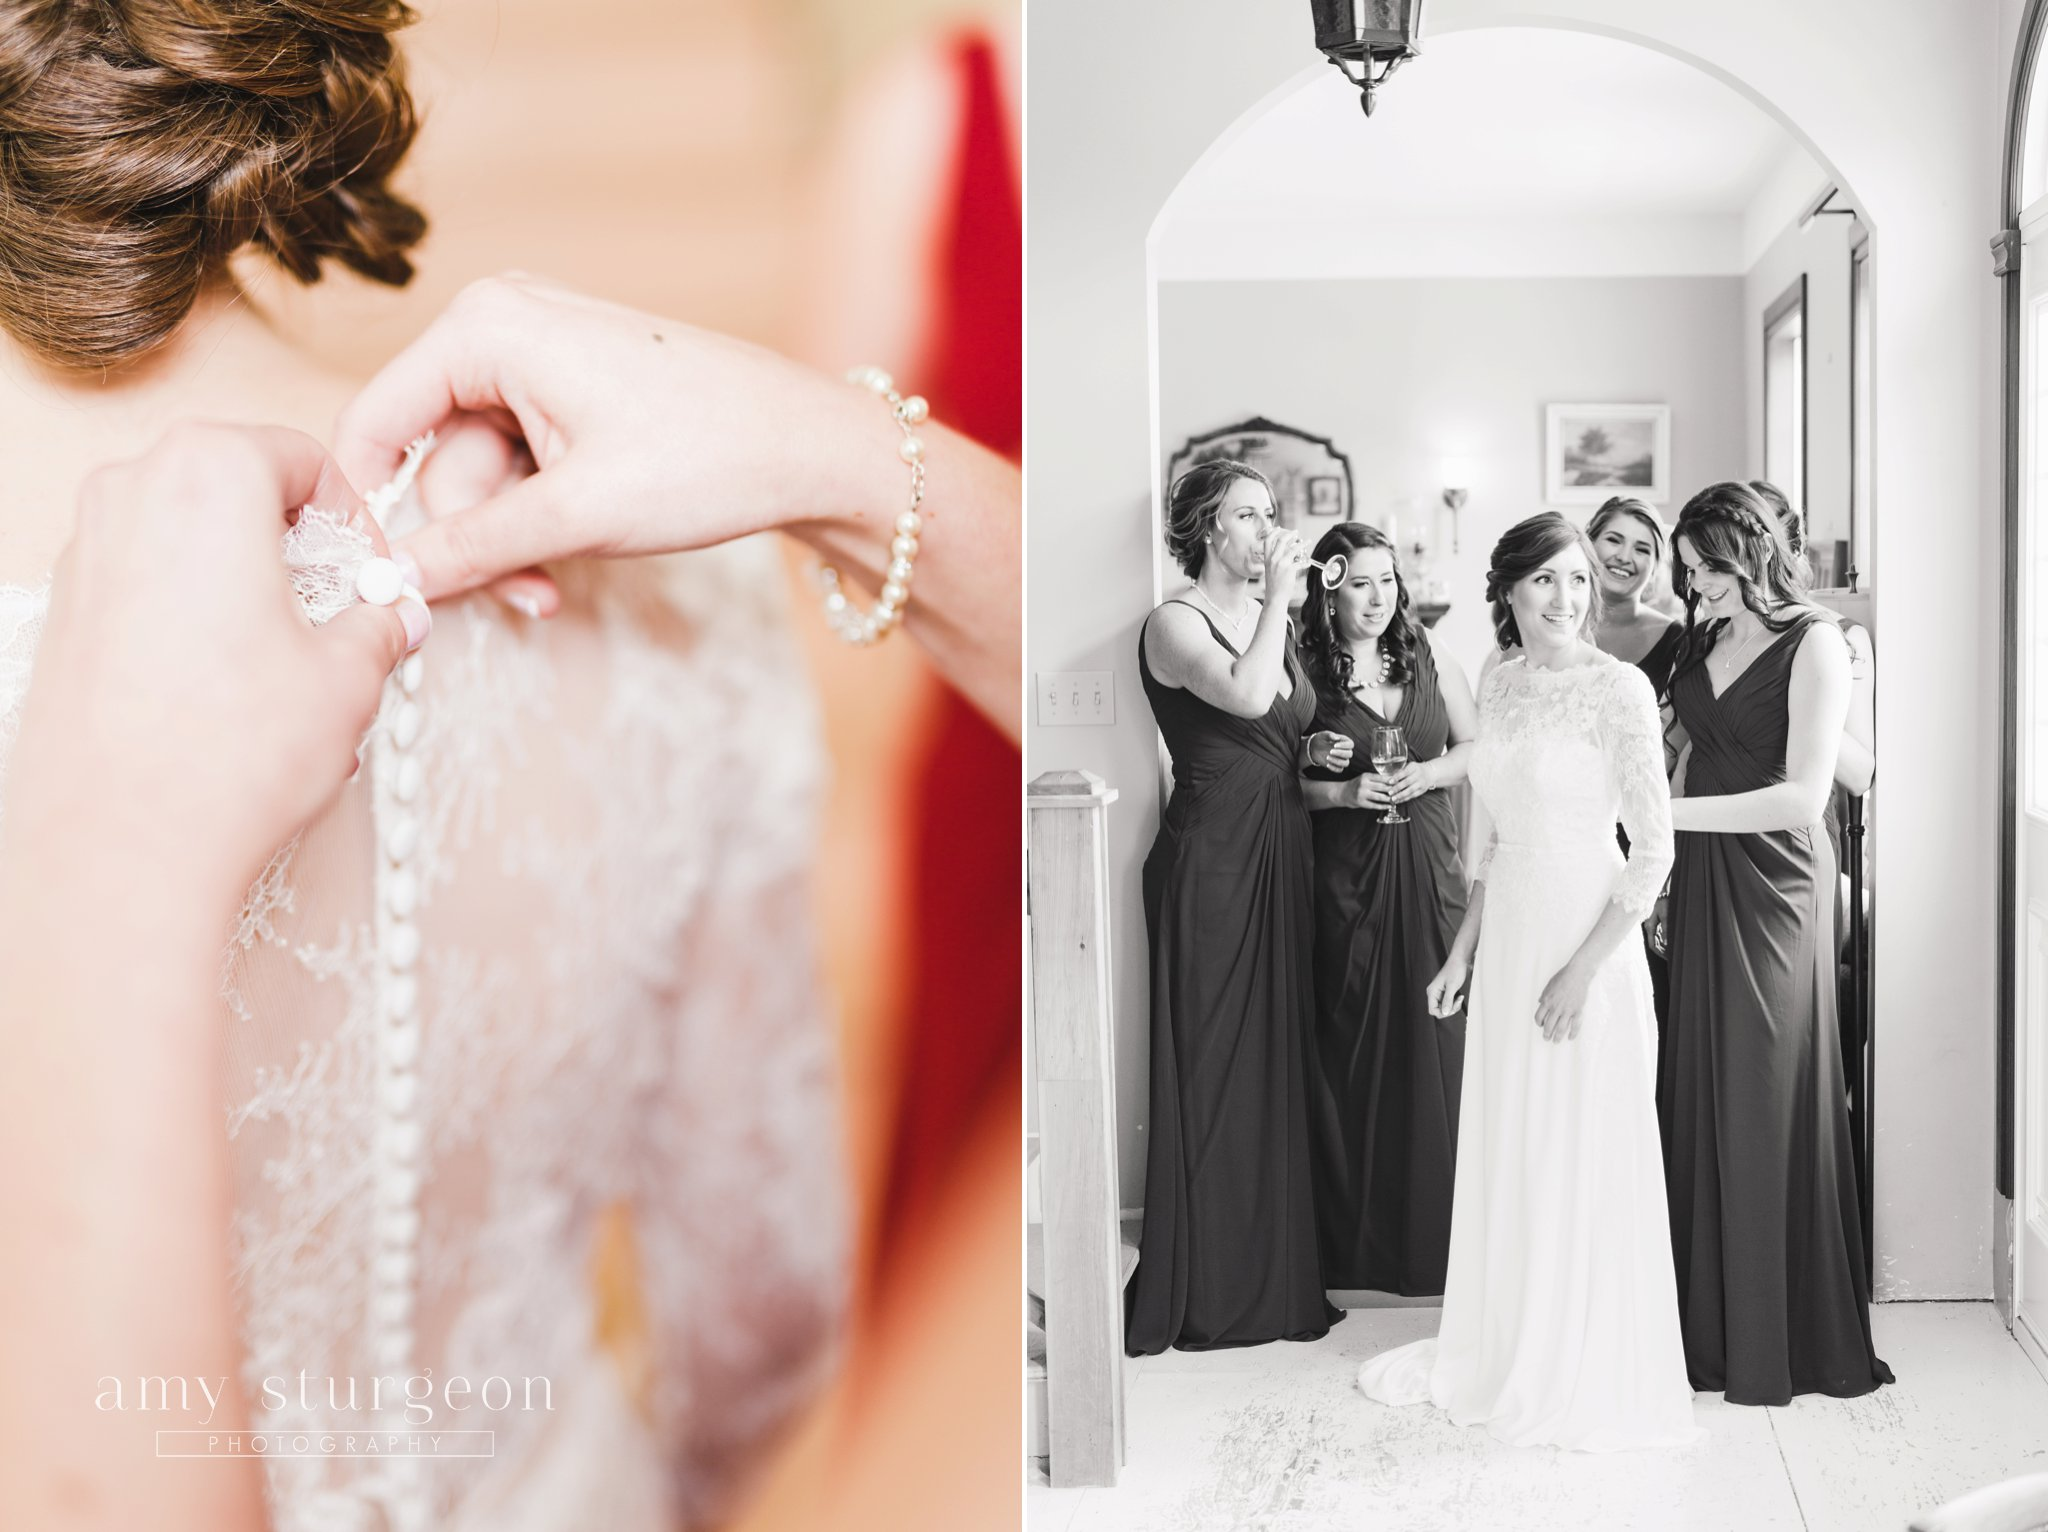 The white satin buttons on the bride's dress were so delicate at the alpaca farm wedding in ottawa